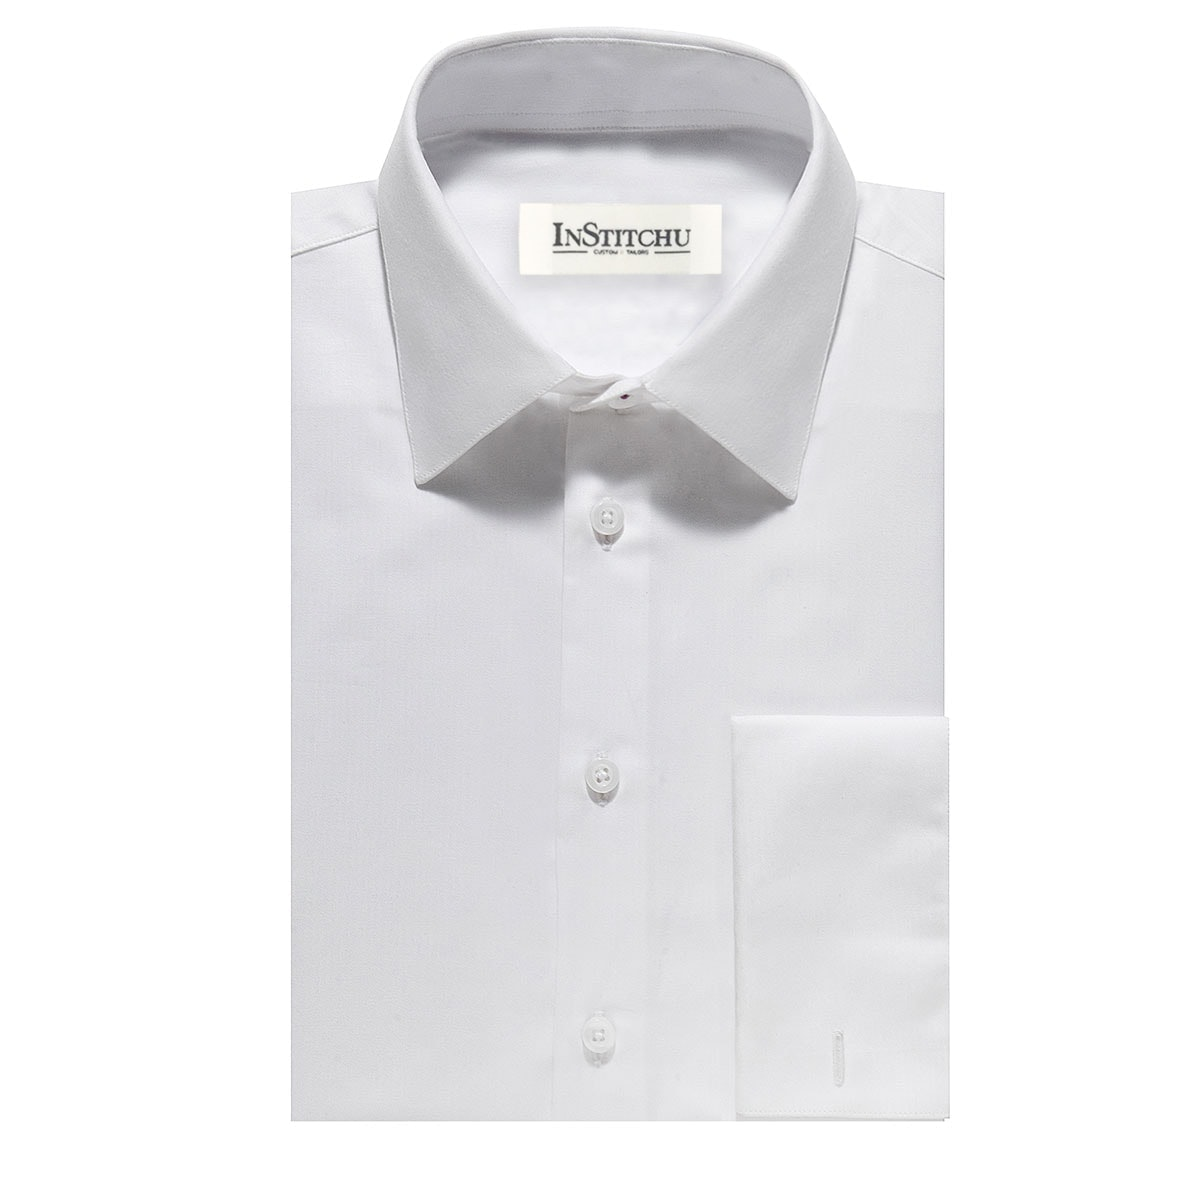 InStitchu Collection The Hannaford White Shirt